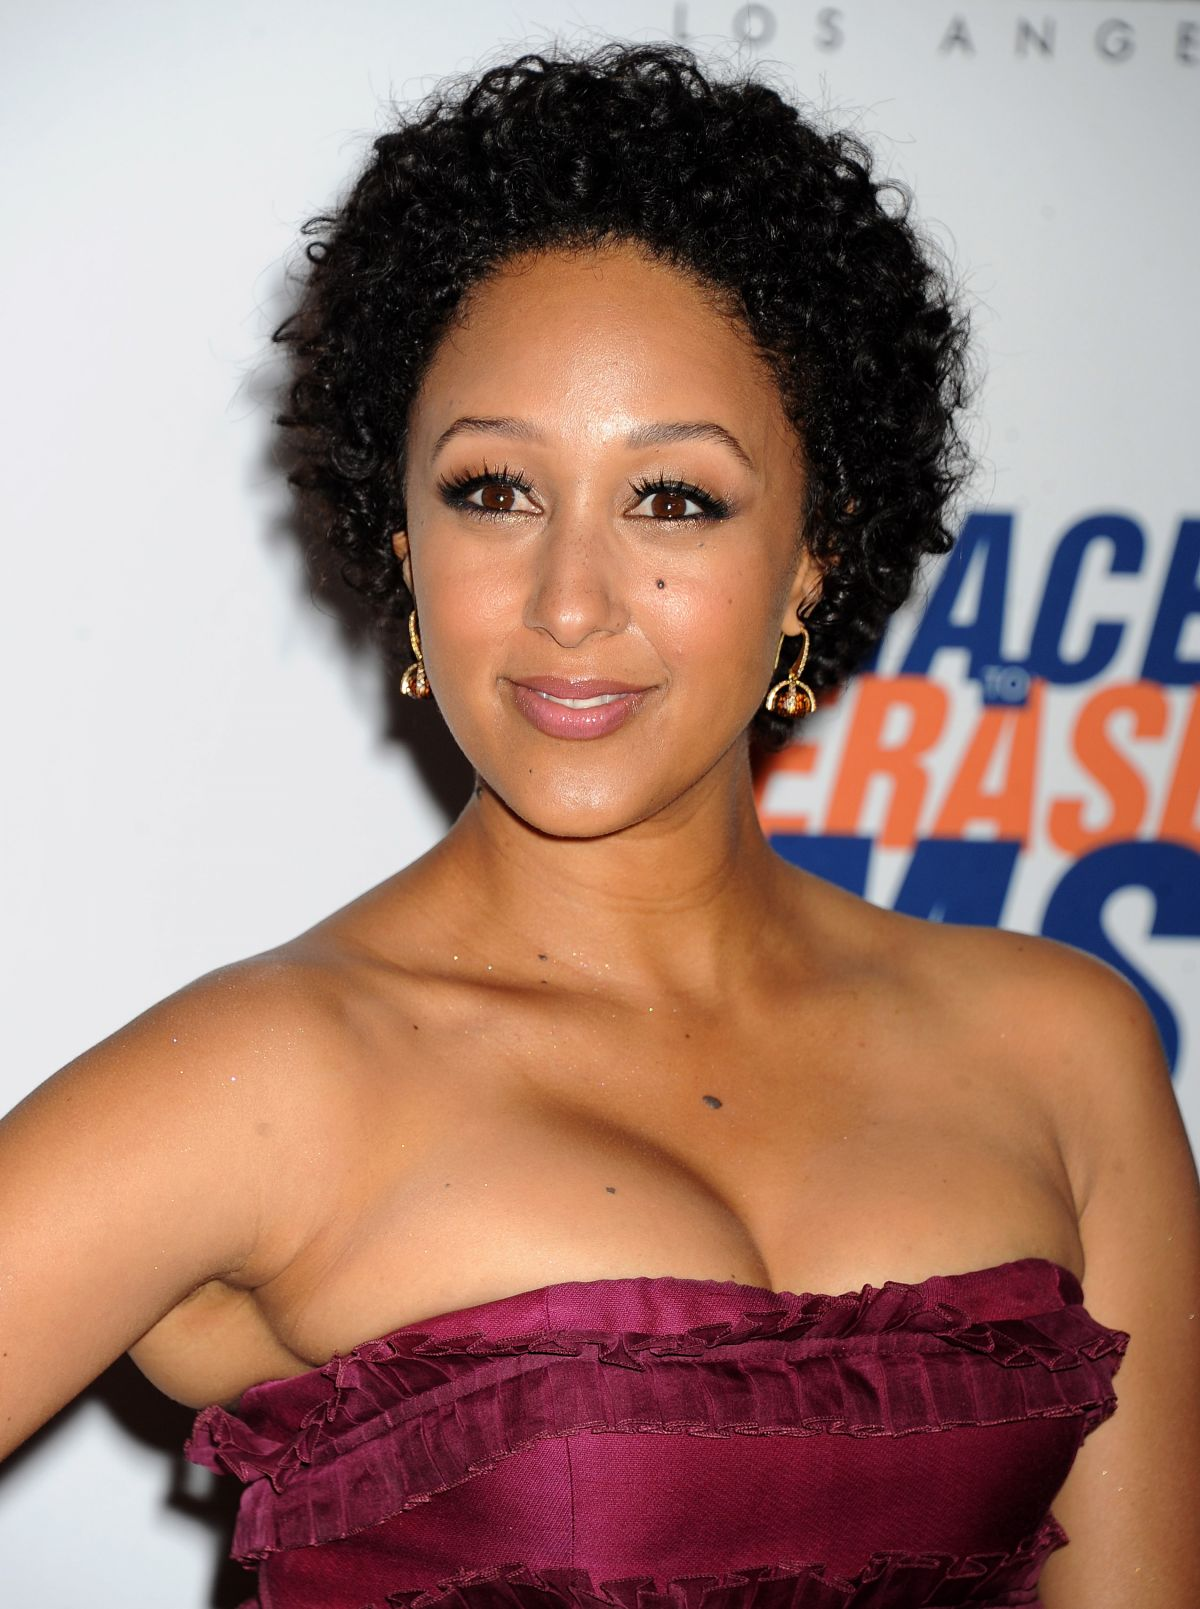 TAMERA MOWRY at Race to Erase Ms, 2014 in Century City